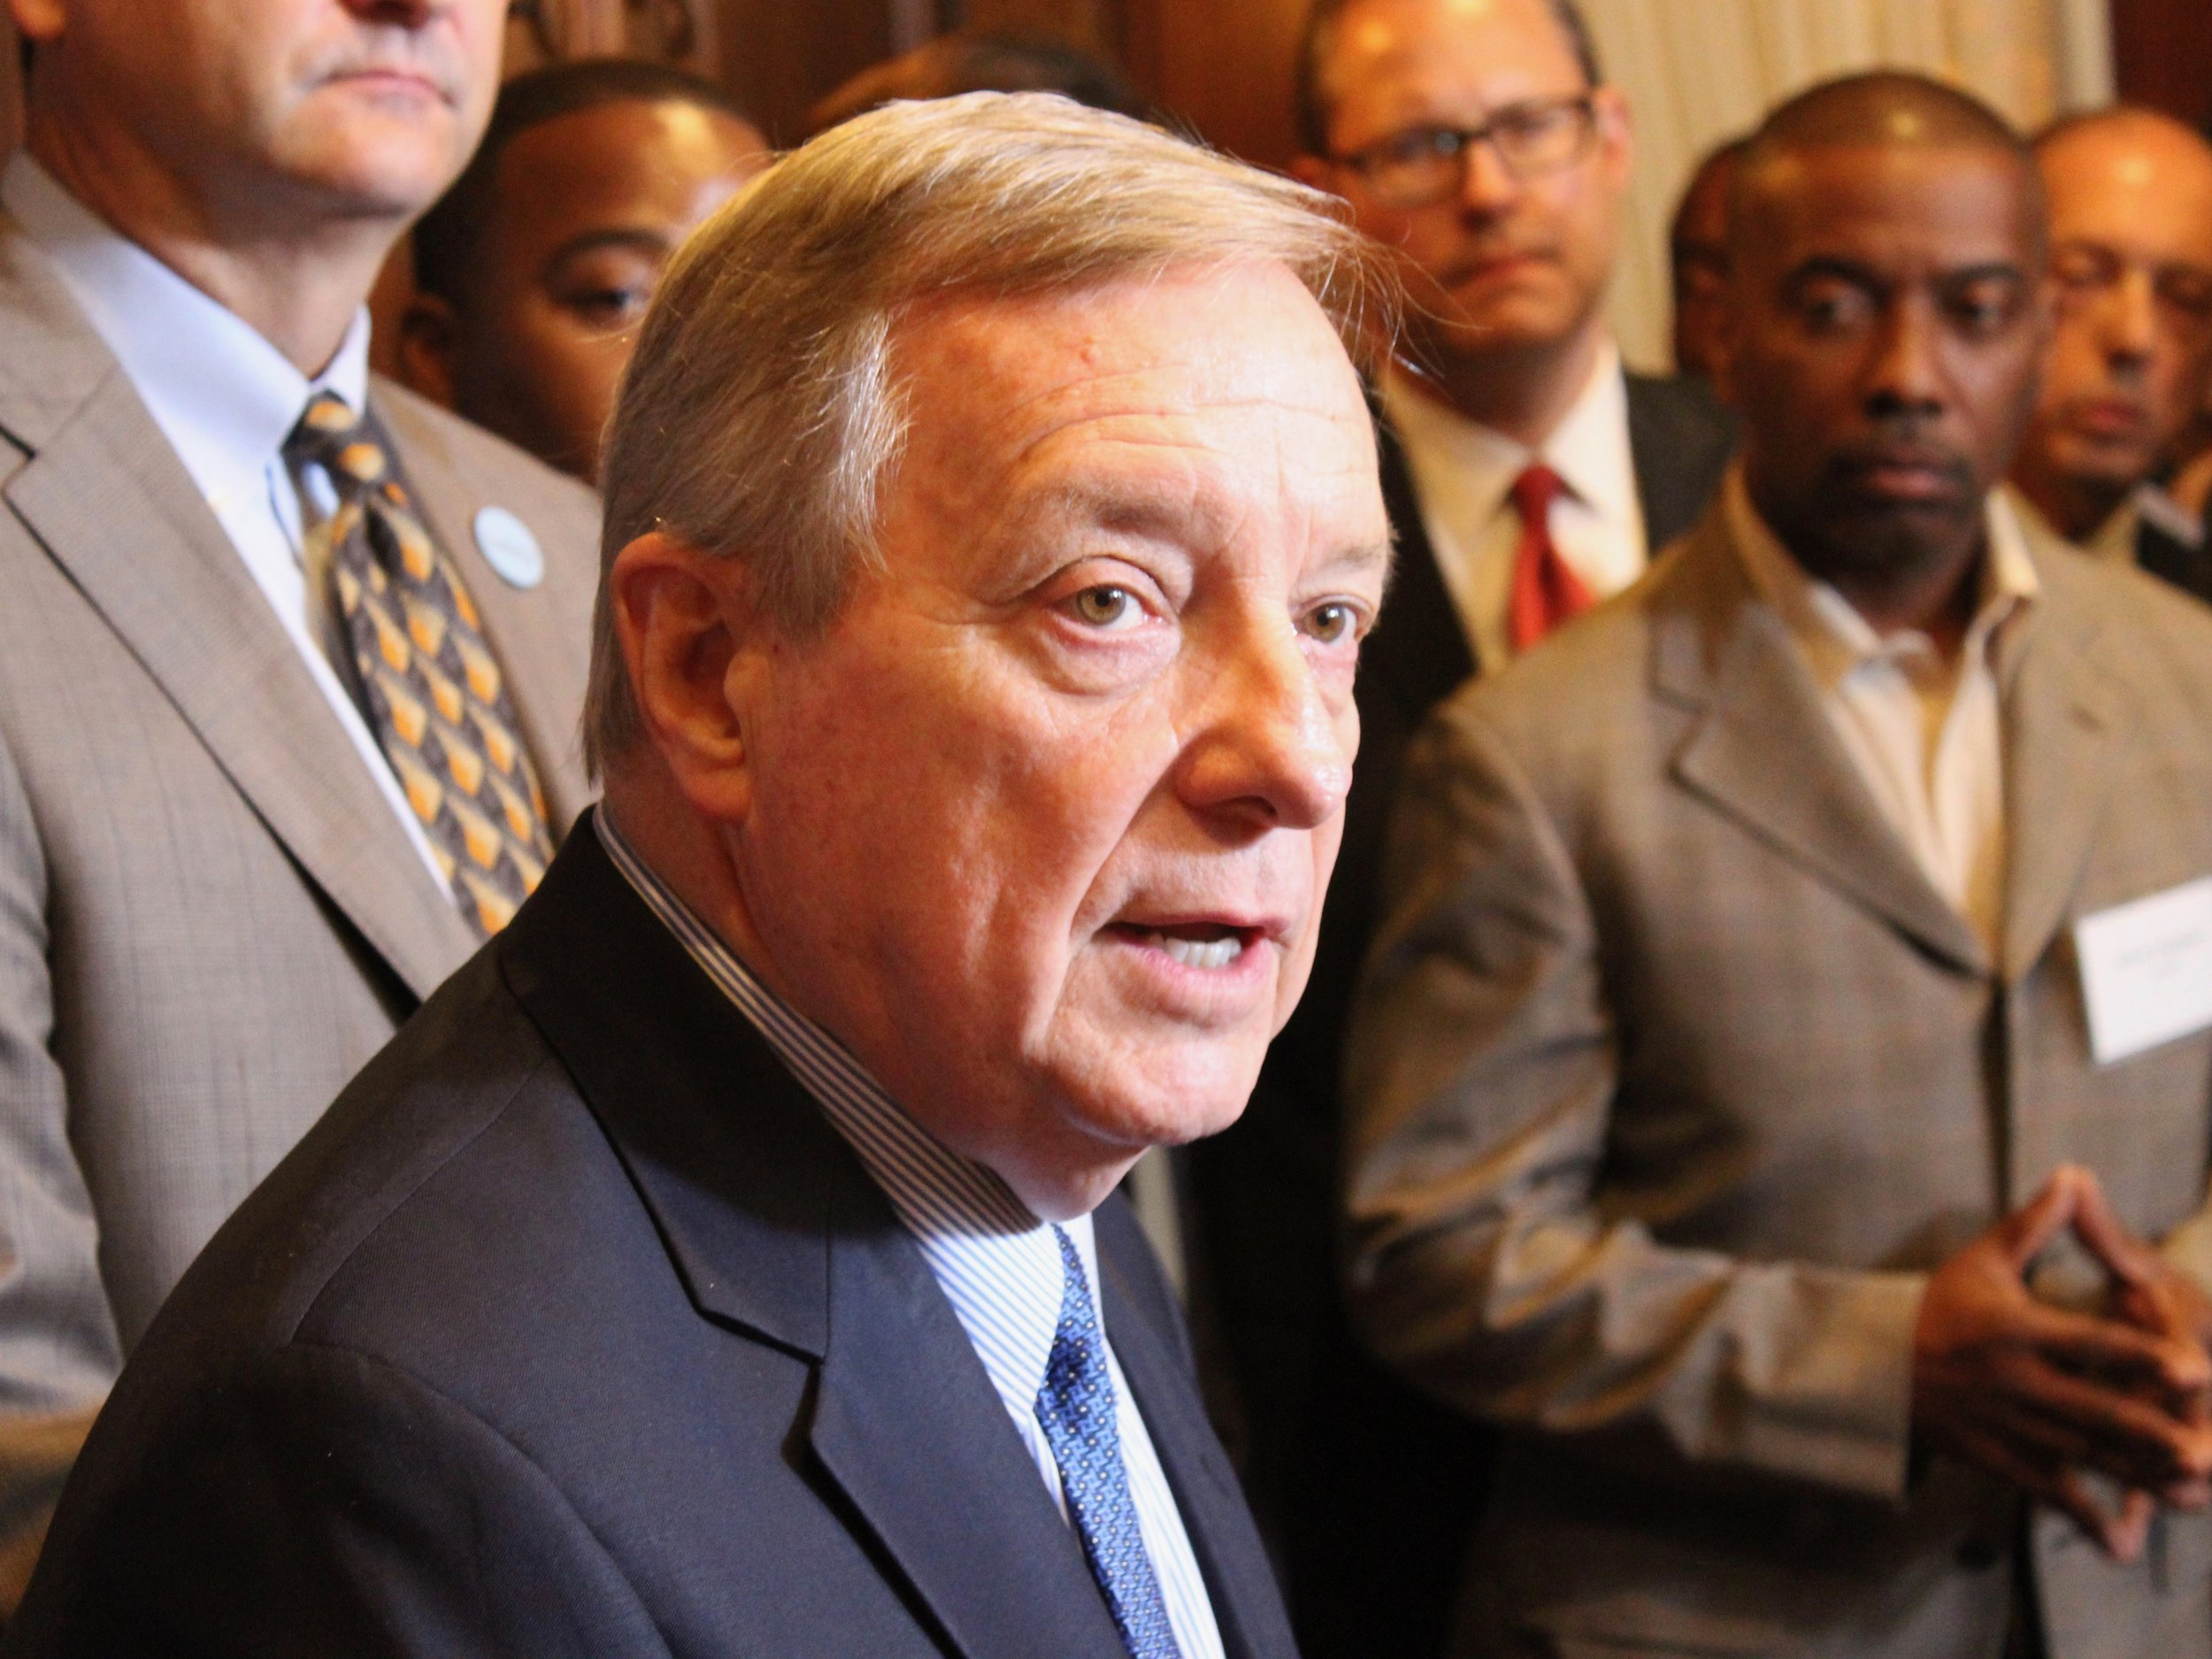 U.S. Sen. Dick Durbin discusses the Brett Kavanaugh U.S. Supreme Court confirmation at the City Club of Chicago Monday. (One Illinois/Ted Cox)